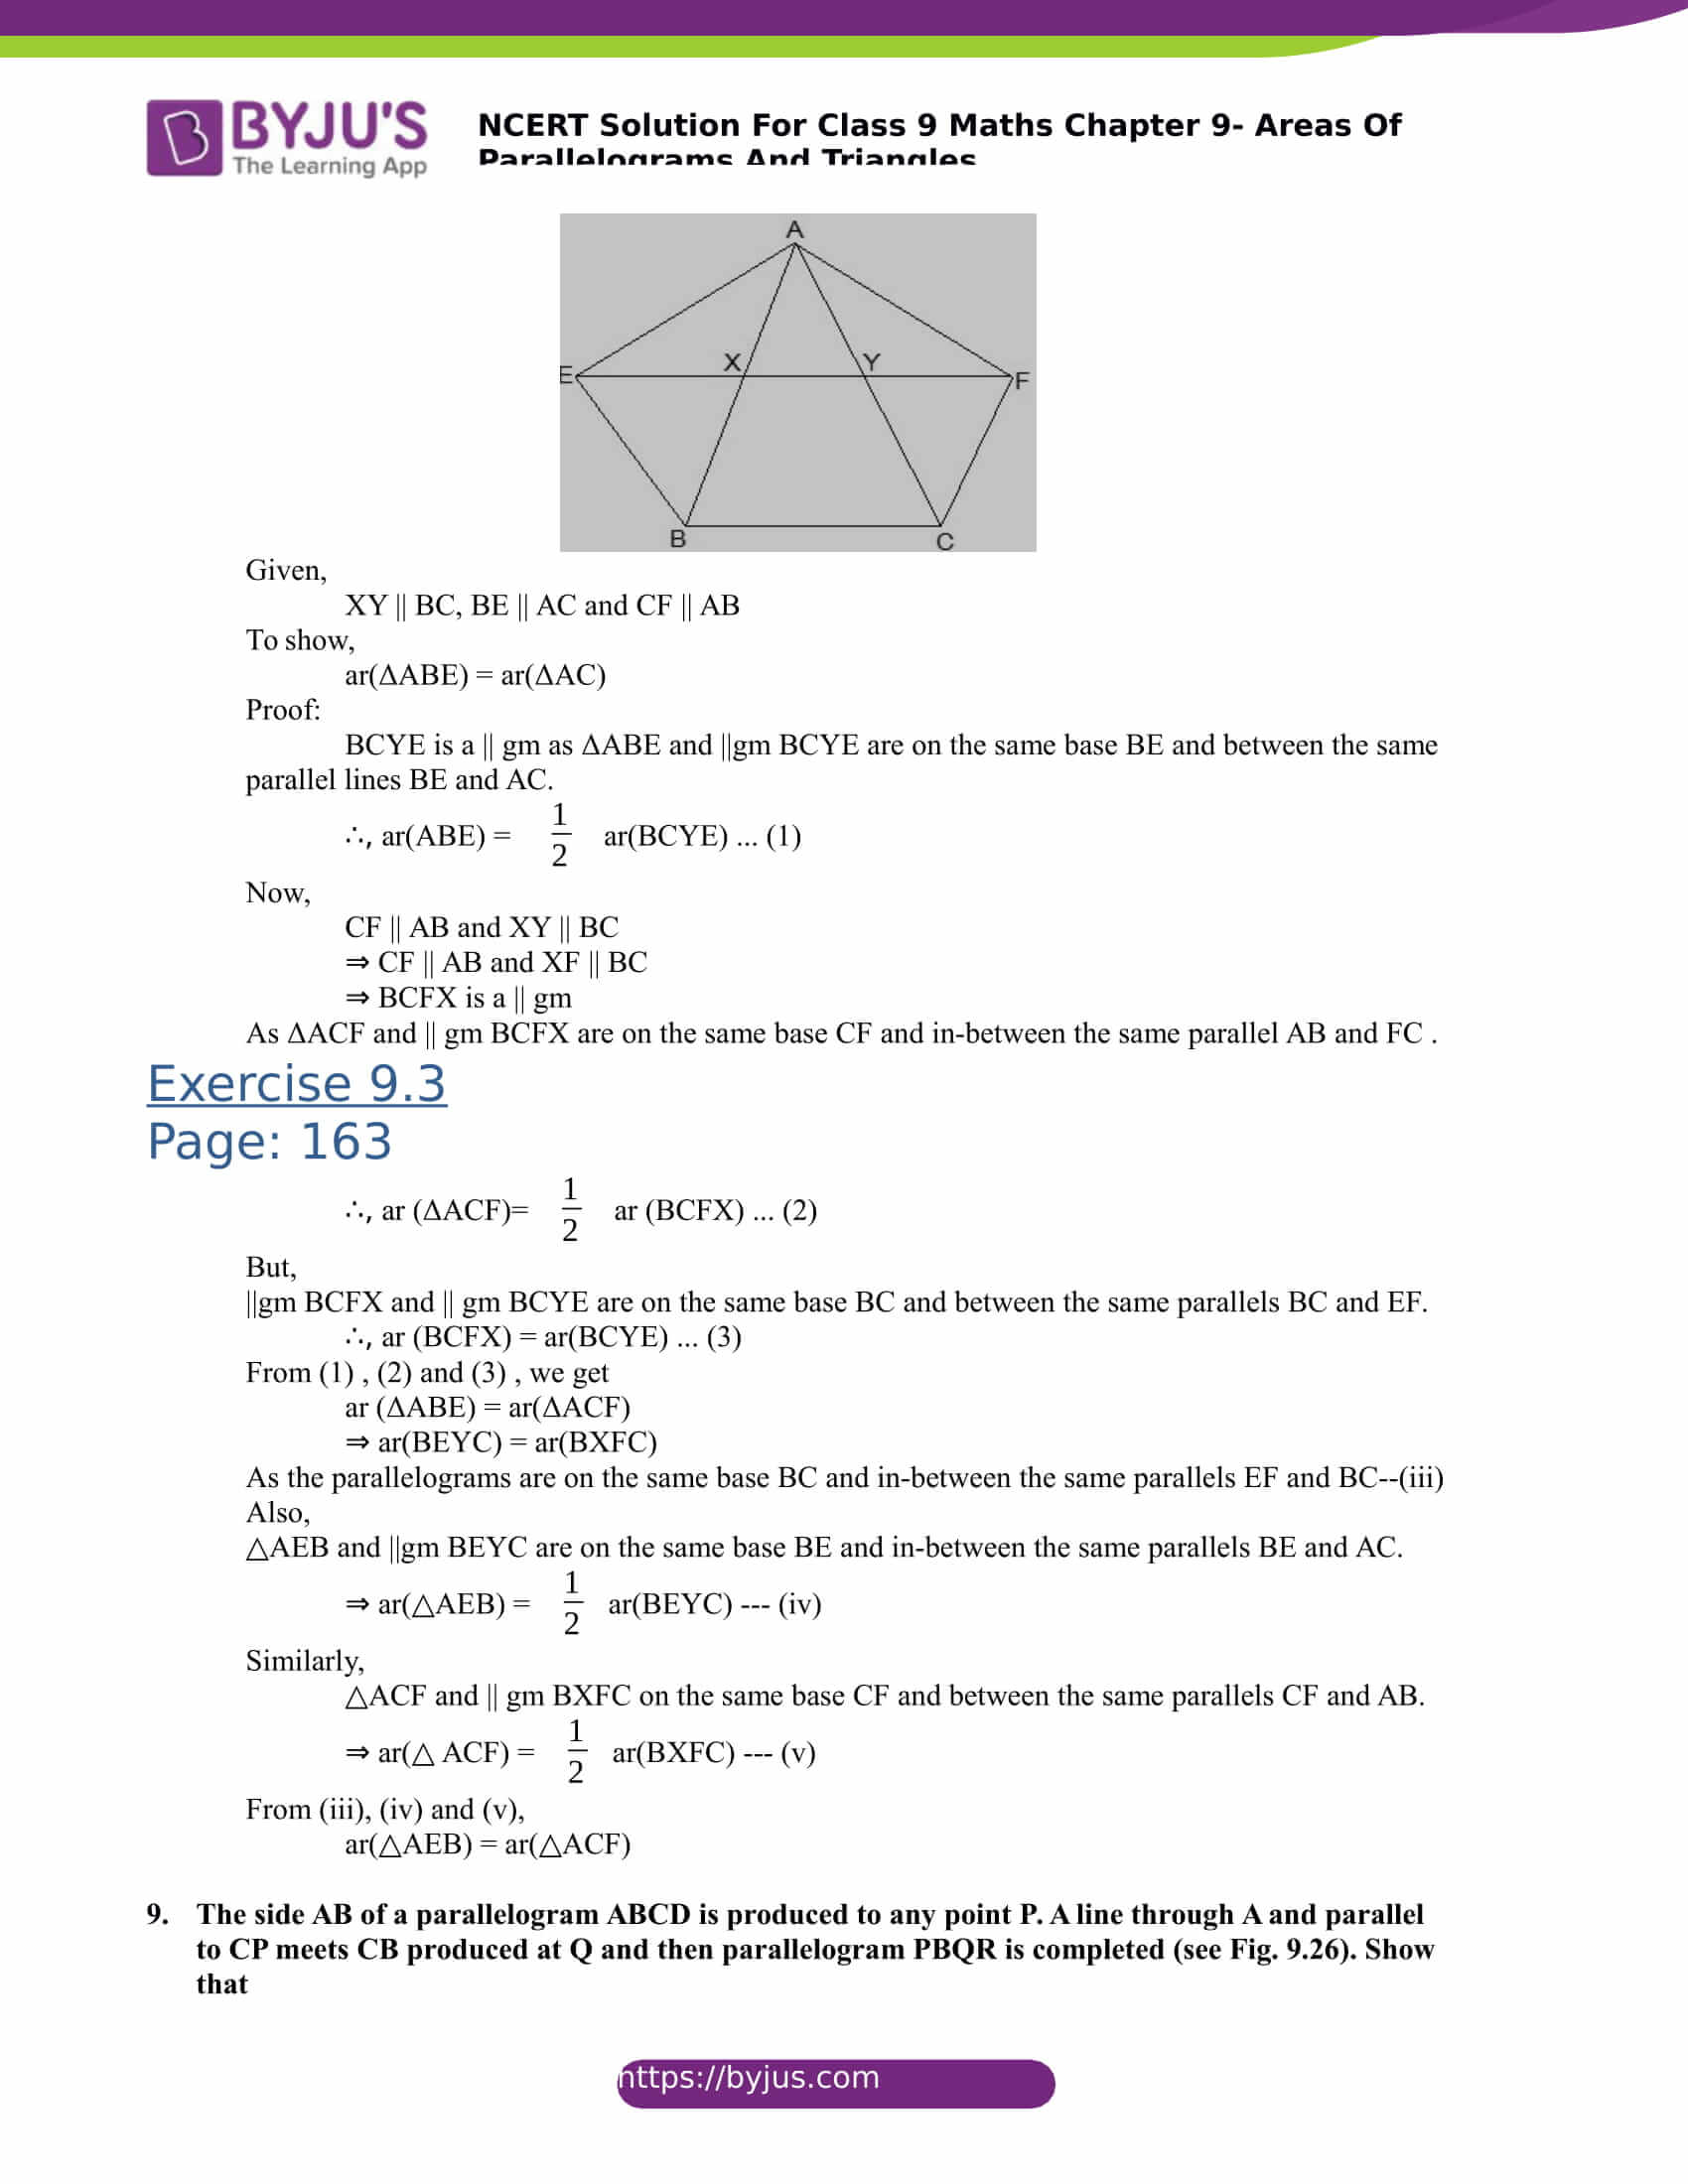 NCERT Solutions for class 9 Maths Chapter 9 Areas of parallelograms and triangles Part 13